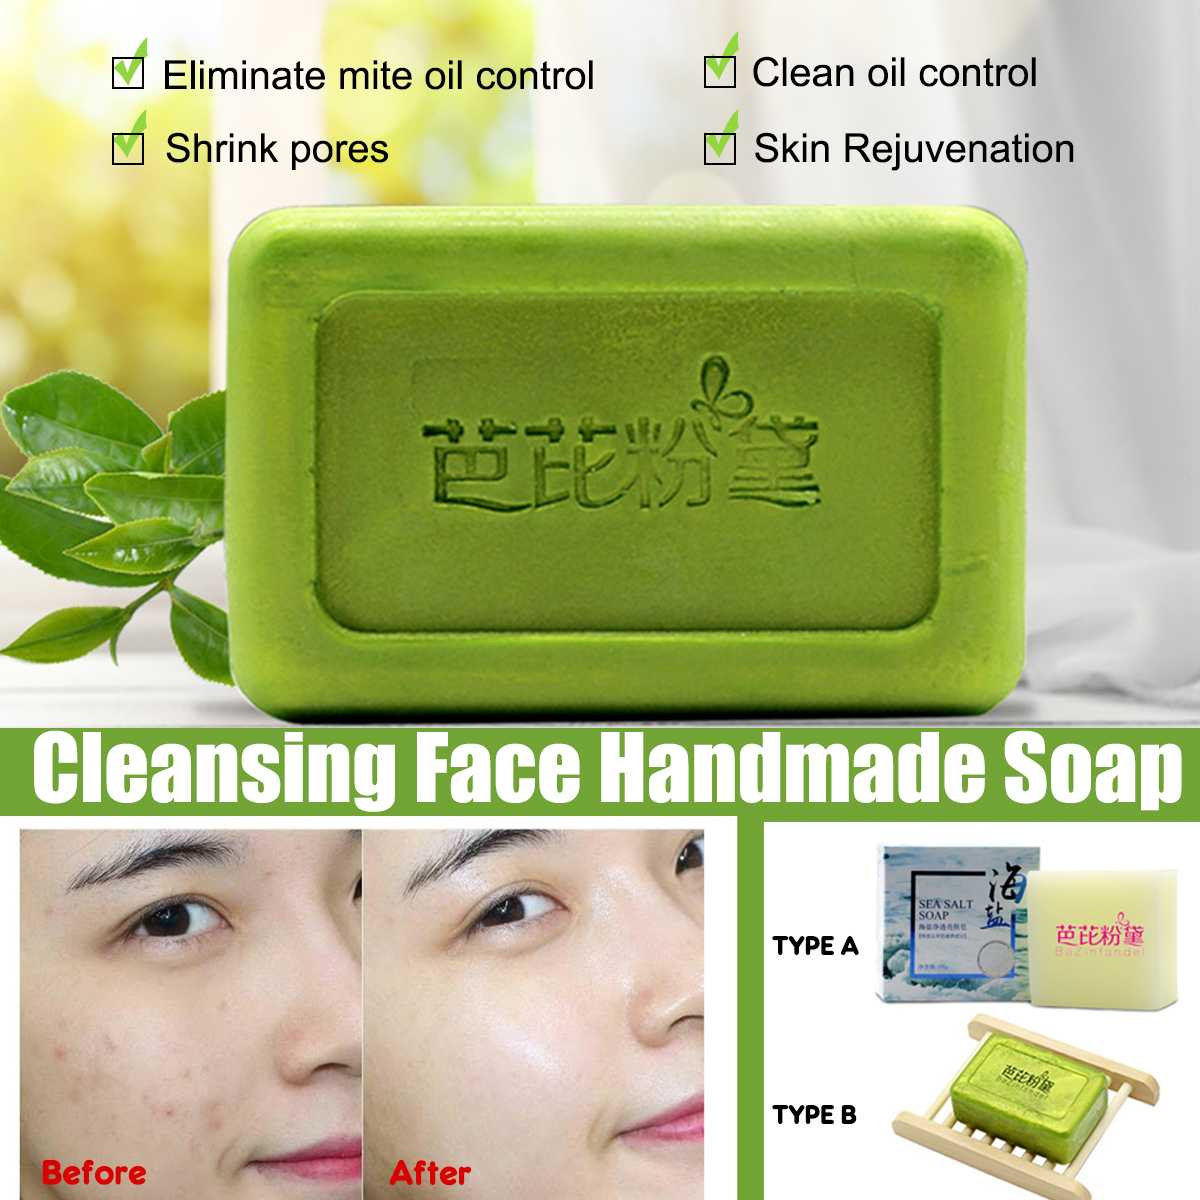 Skin Soap Remove Mite Sea Salt Handmade Soap Whitening Moisturizing Face Cleansing Soap Remove Acne Cleansing Bath Bar Soap